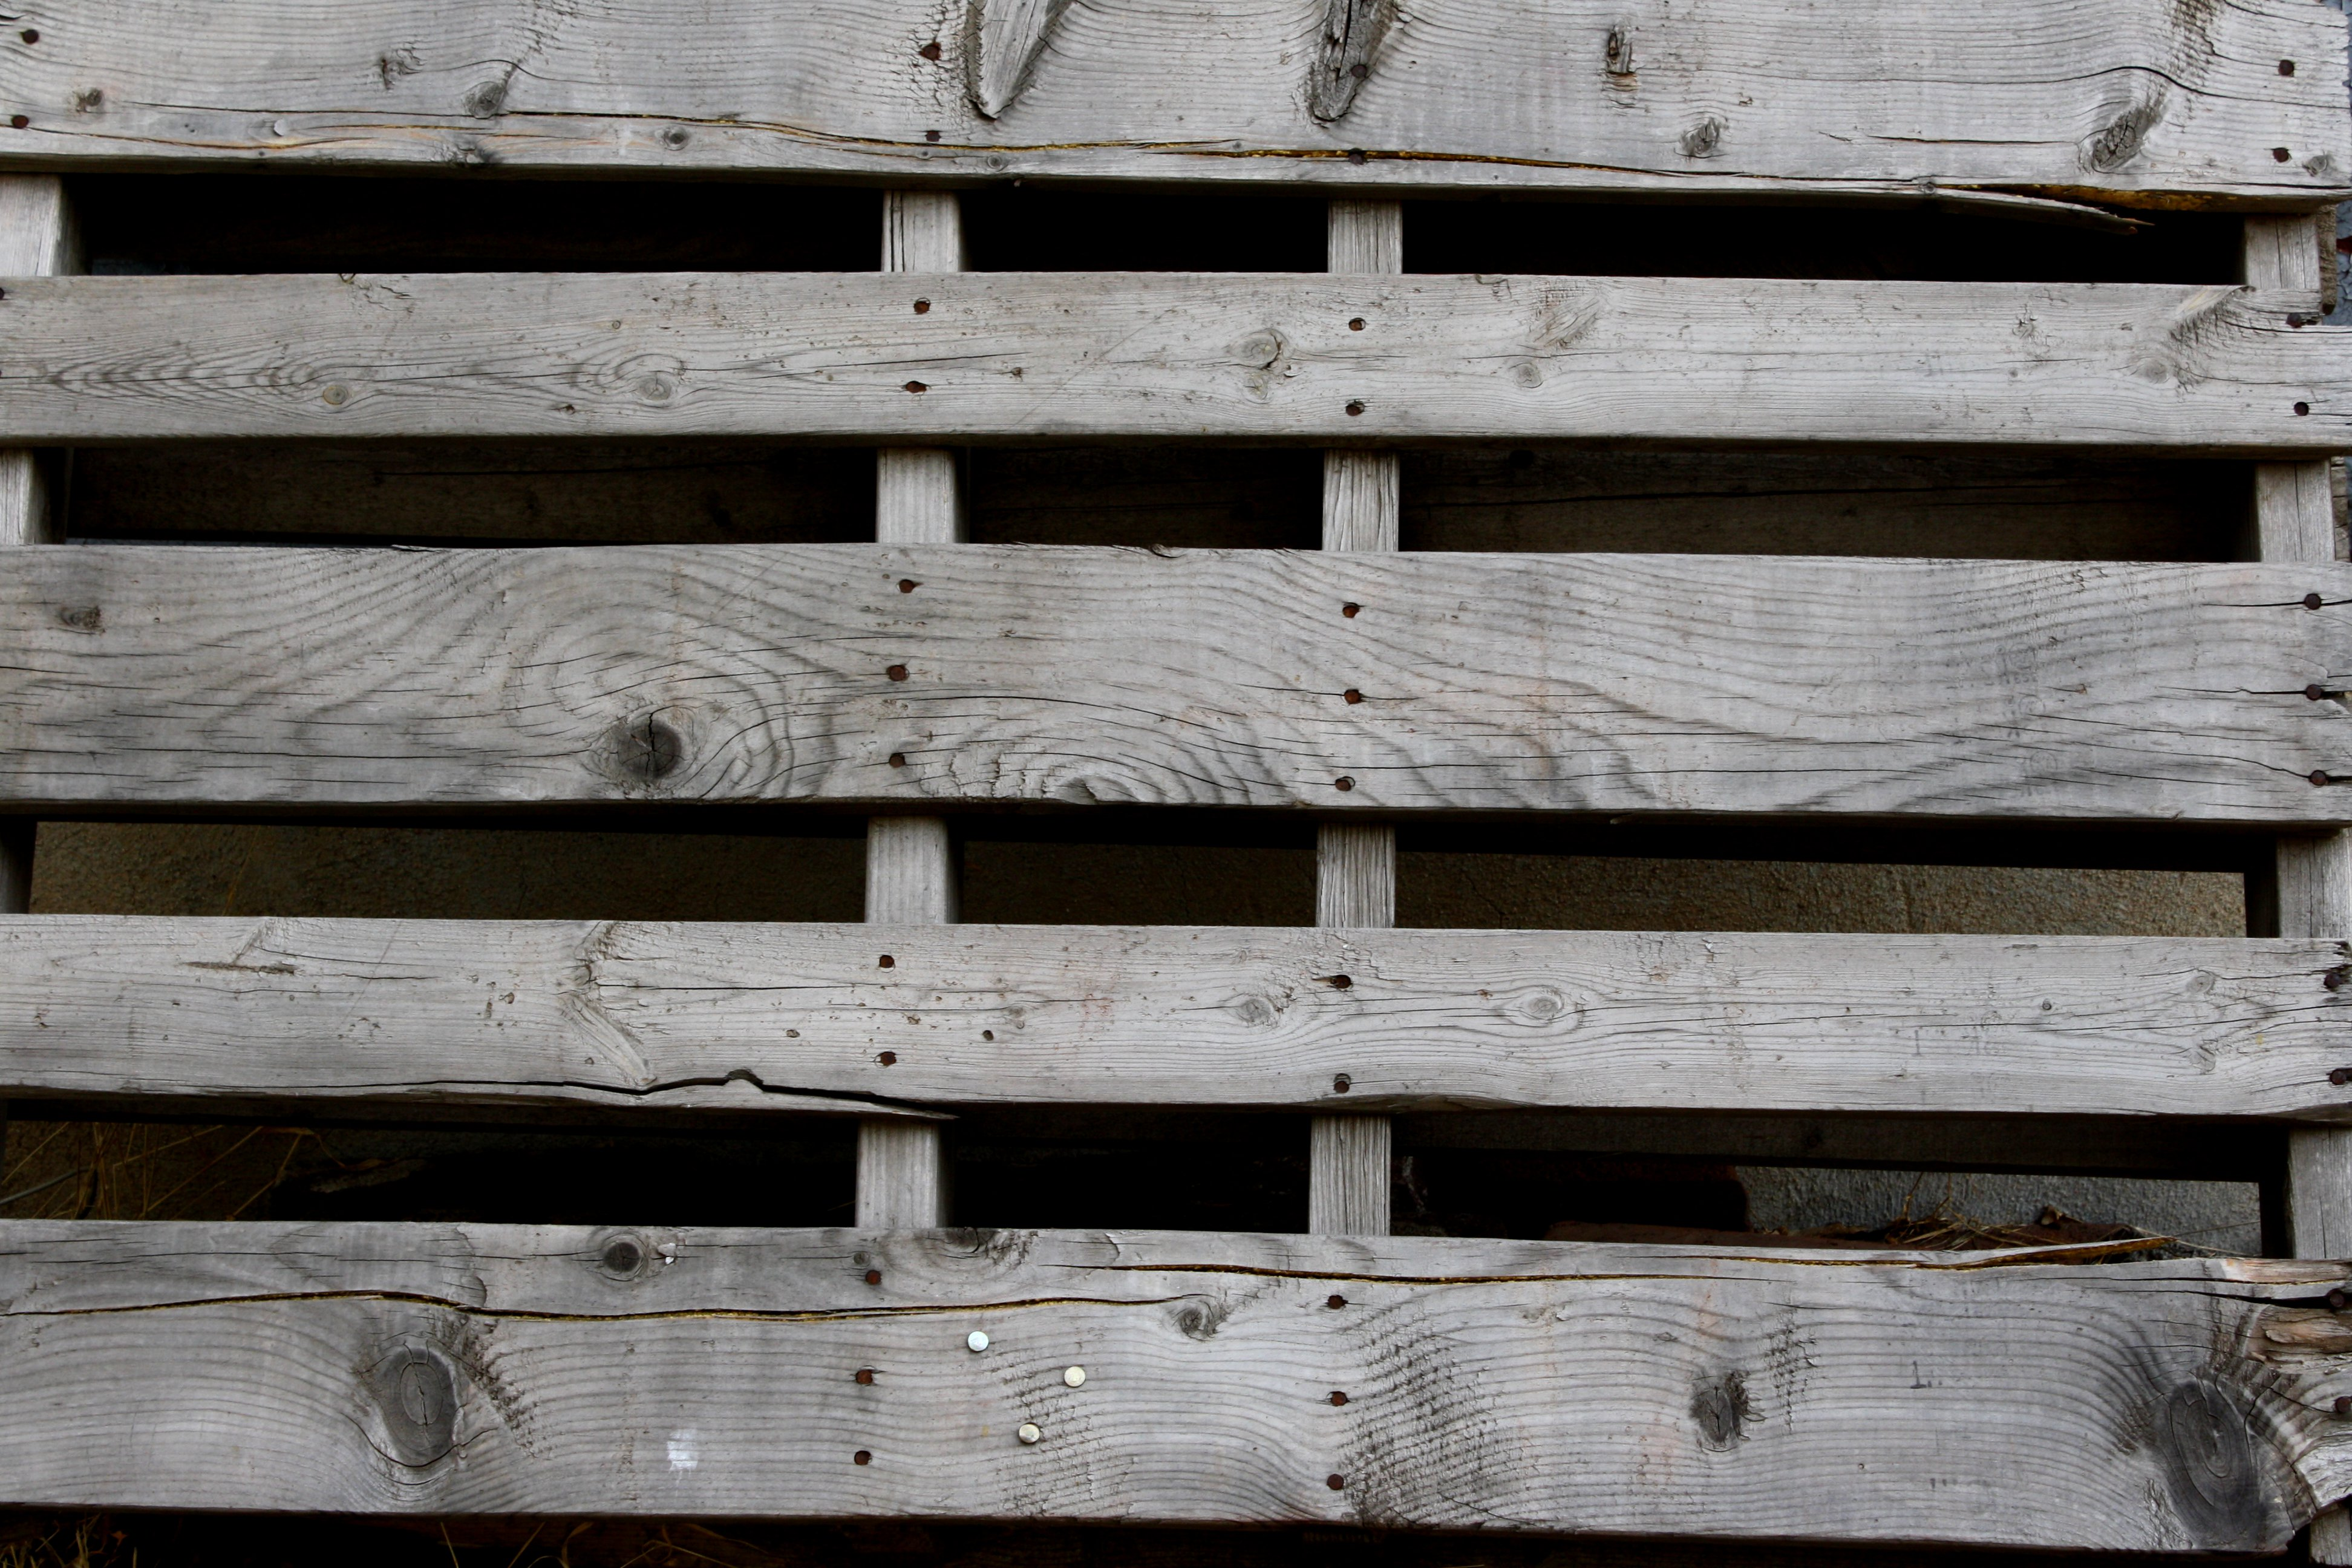 Old Wooden Pallet Close Up Picture | Free Photograph ...